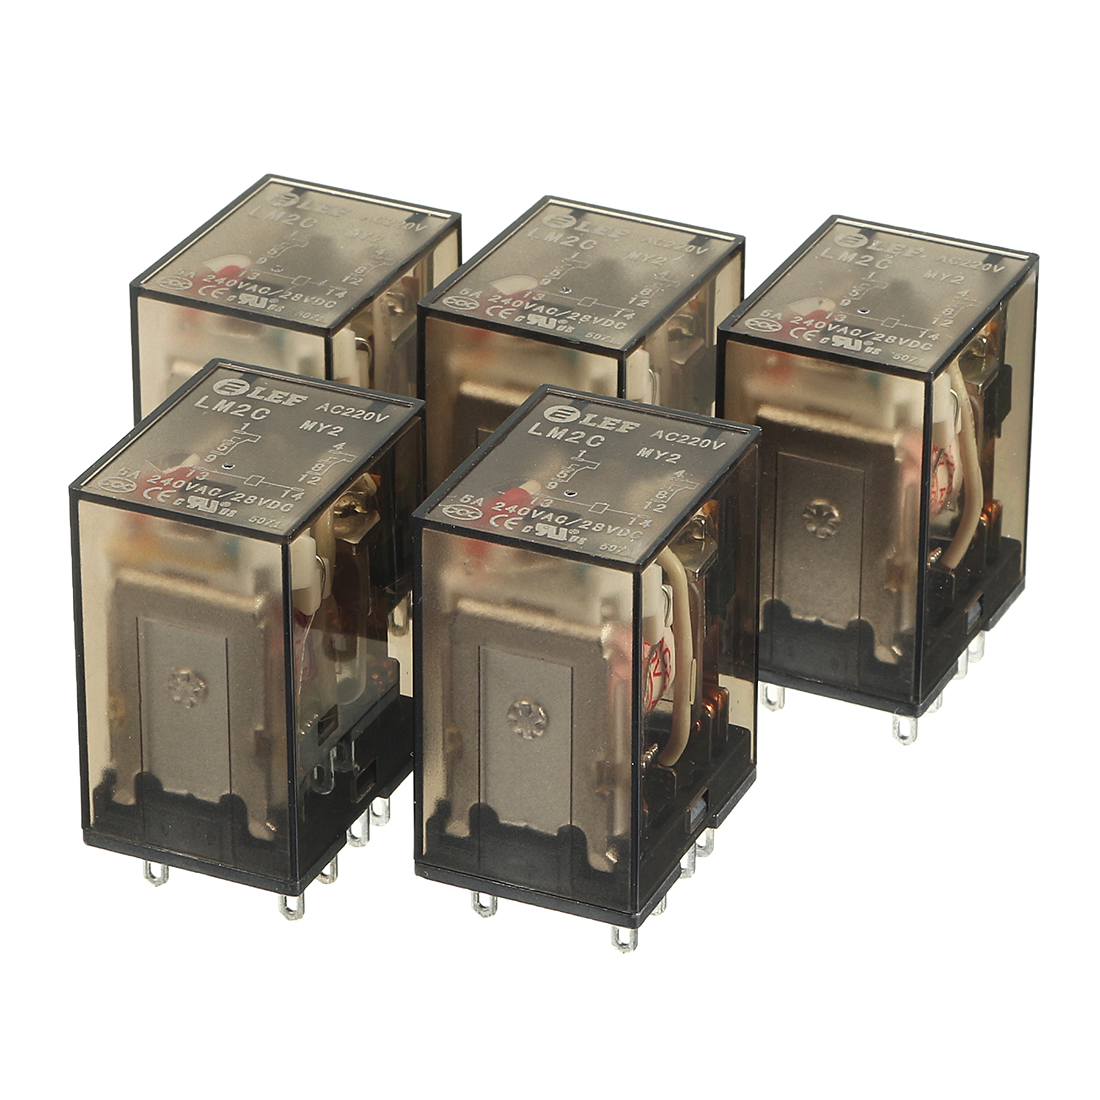 5Pcs DC28V Coil DPDT 2NO+2NC 8Pins Power Electromagnetic Relay DIN Rail Mounted